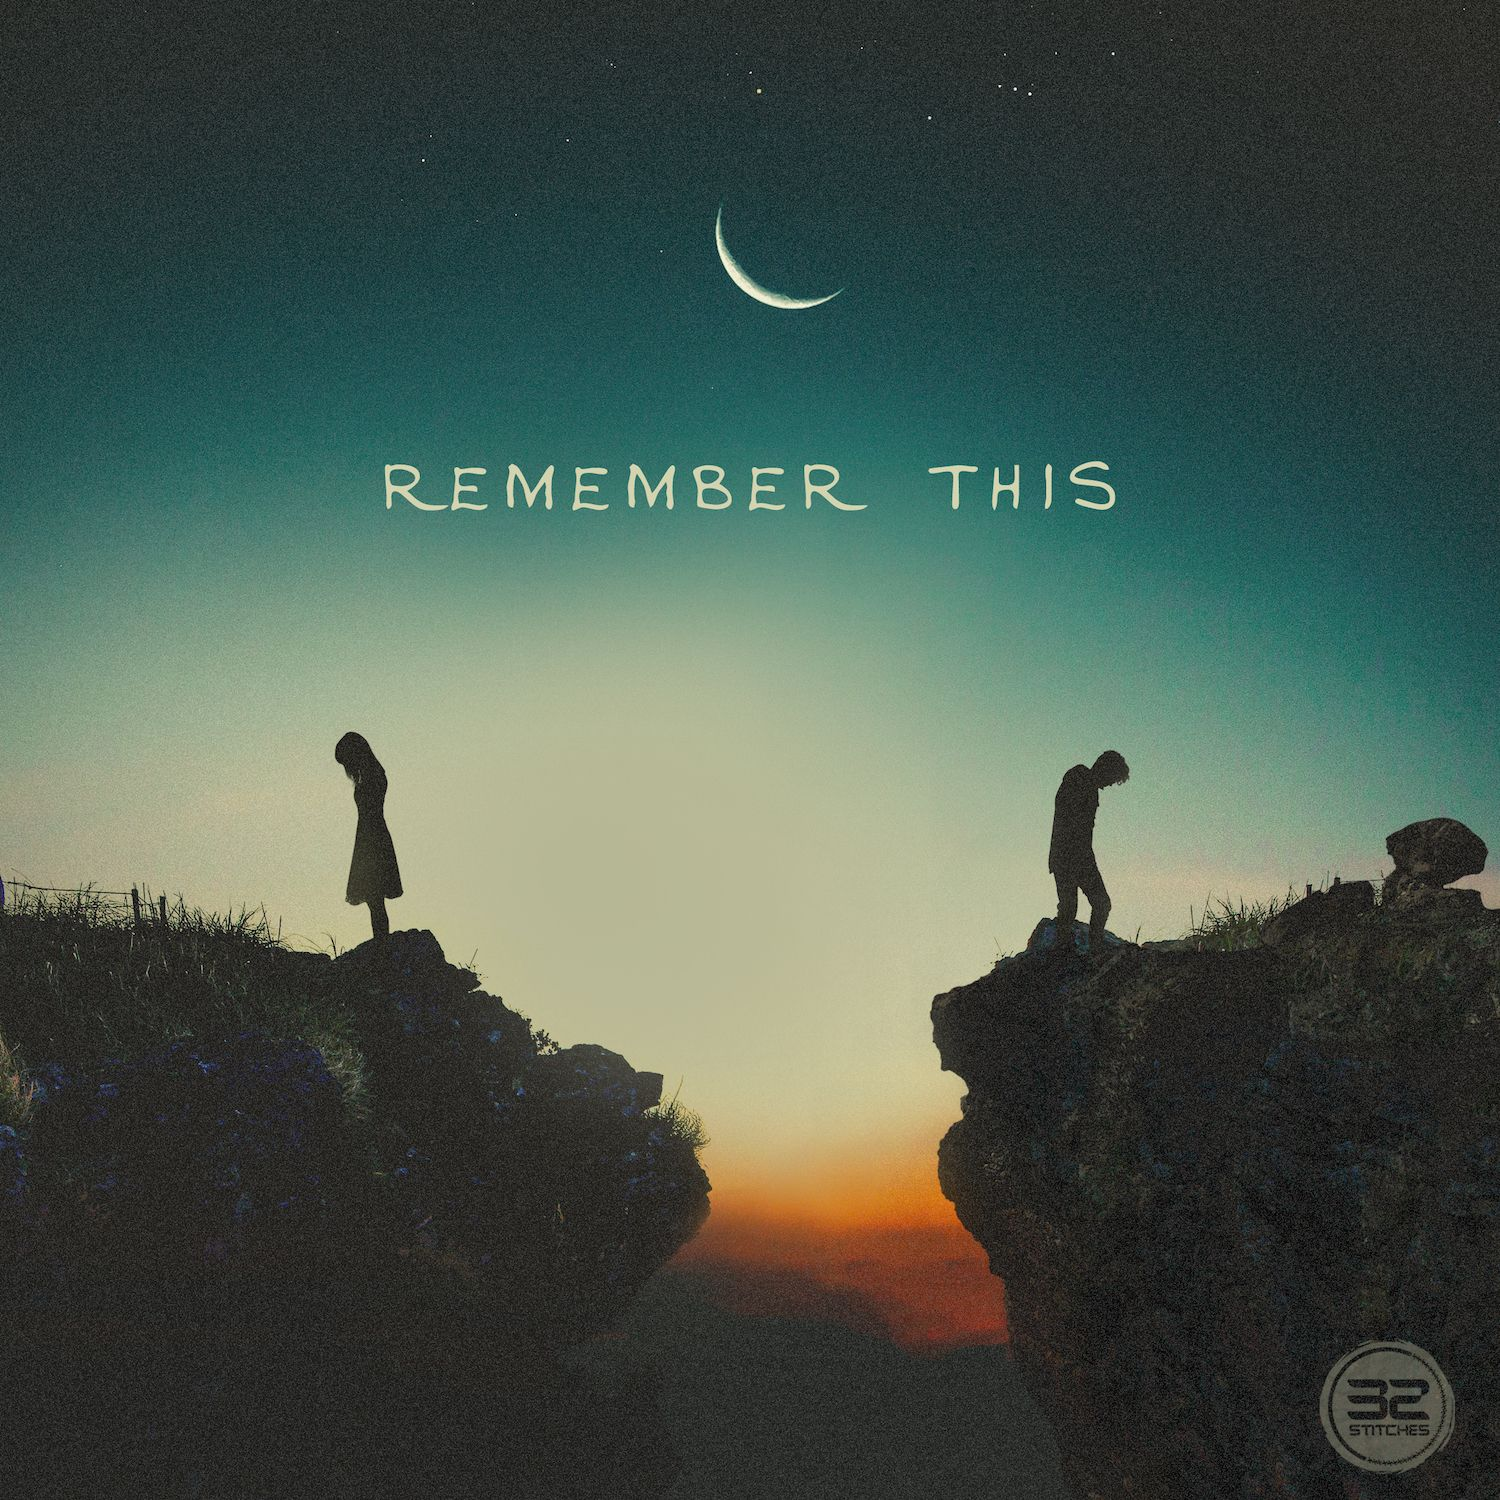 remember_this_1500px.jpg